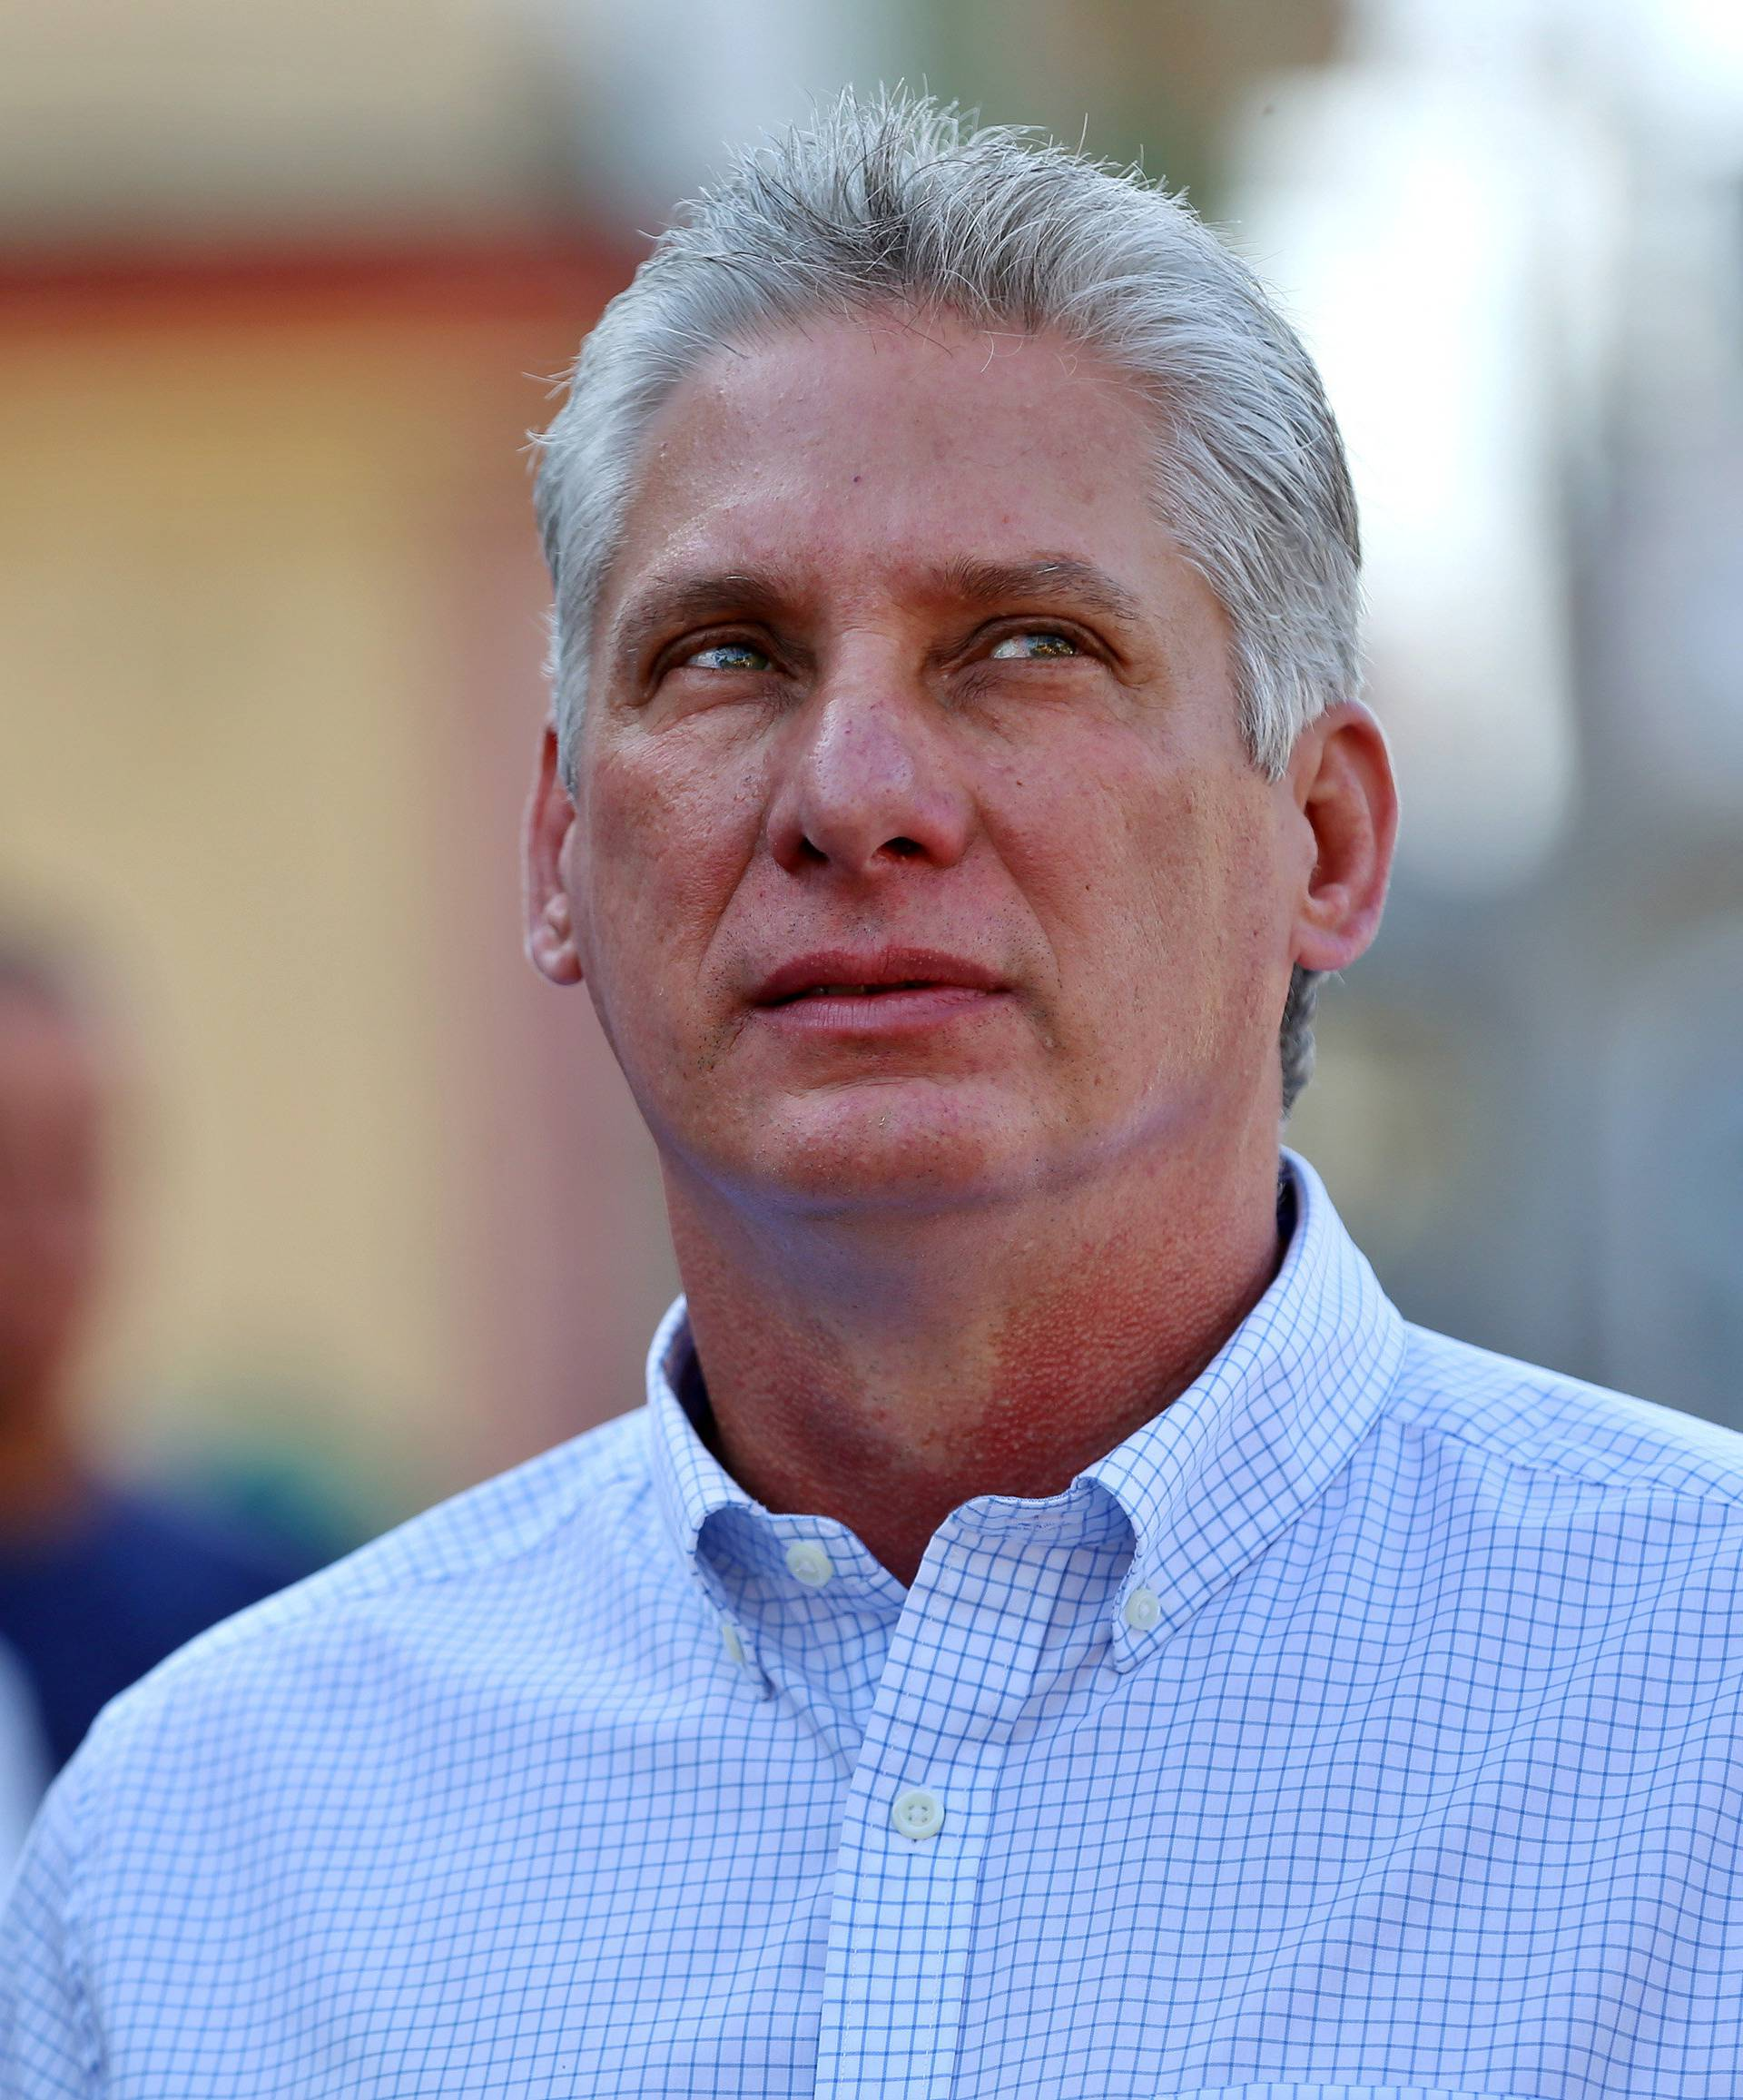 FILE PHOTO: Cuba's First Vice-President Miguel Diaz-Canel stands in line before casting his vote during an election of candidates for the national and provincial assemblies, in Santa Clara